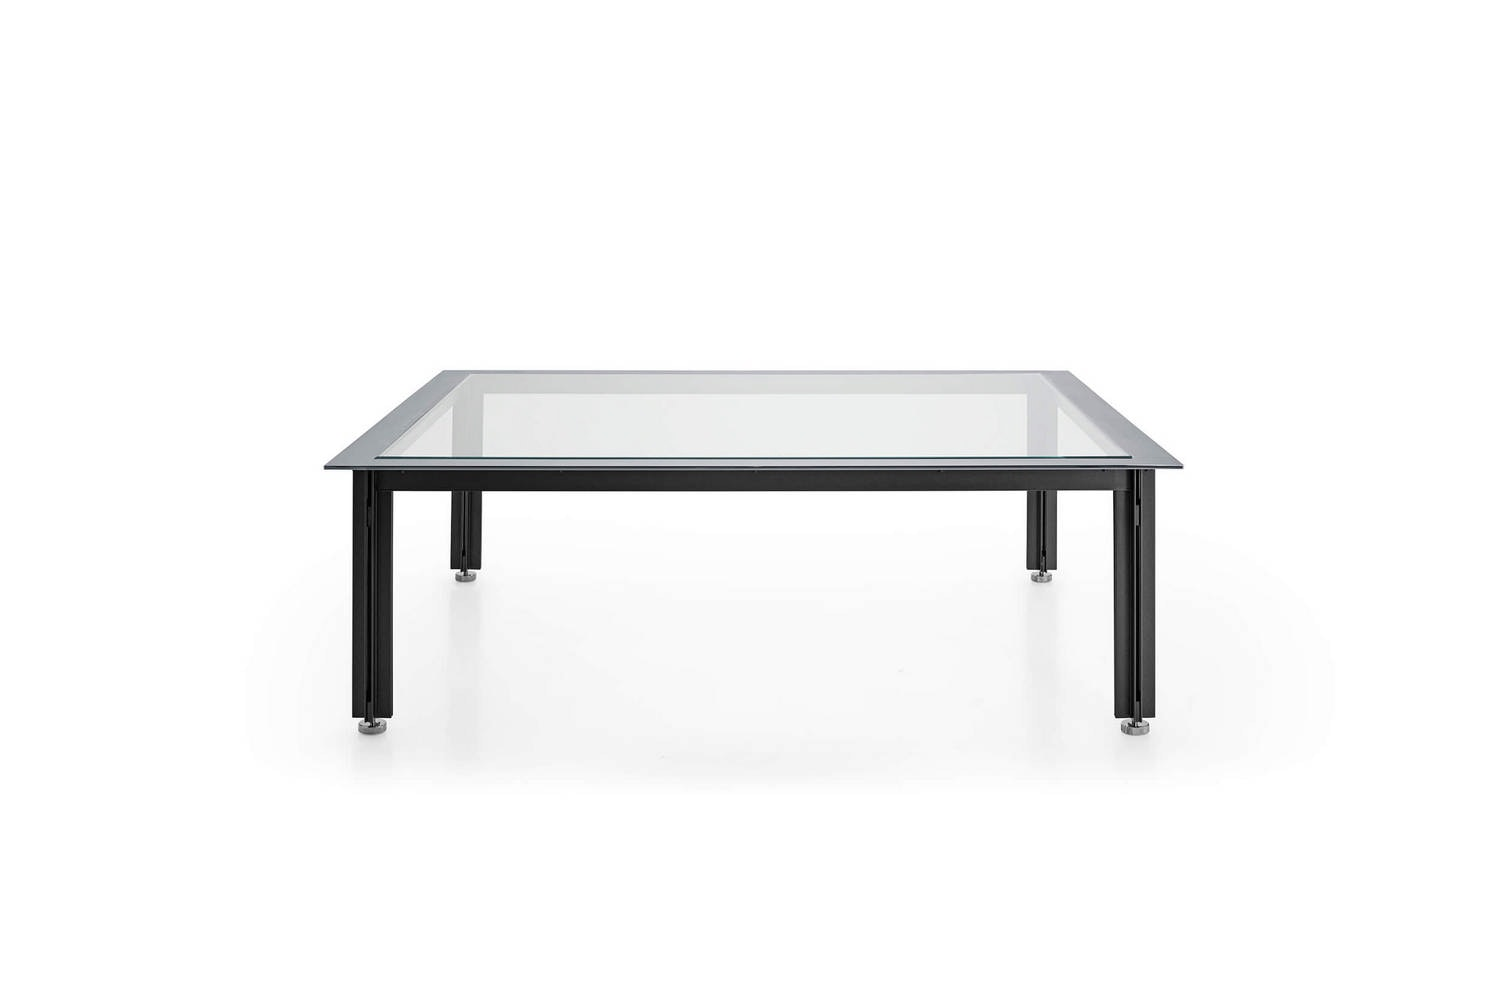 Fasce Cromate Coffee Table by Luigi Caccia Dominioni for Azucena